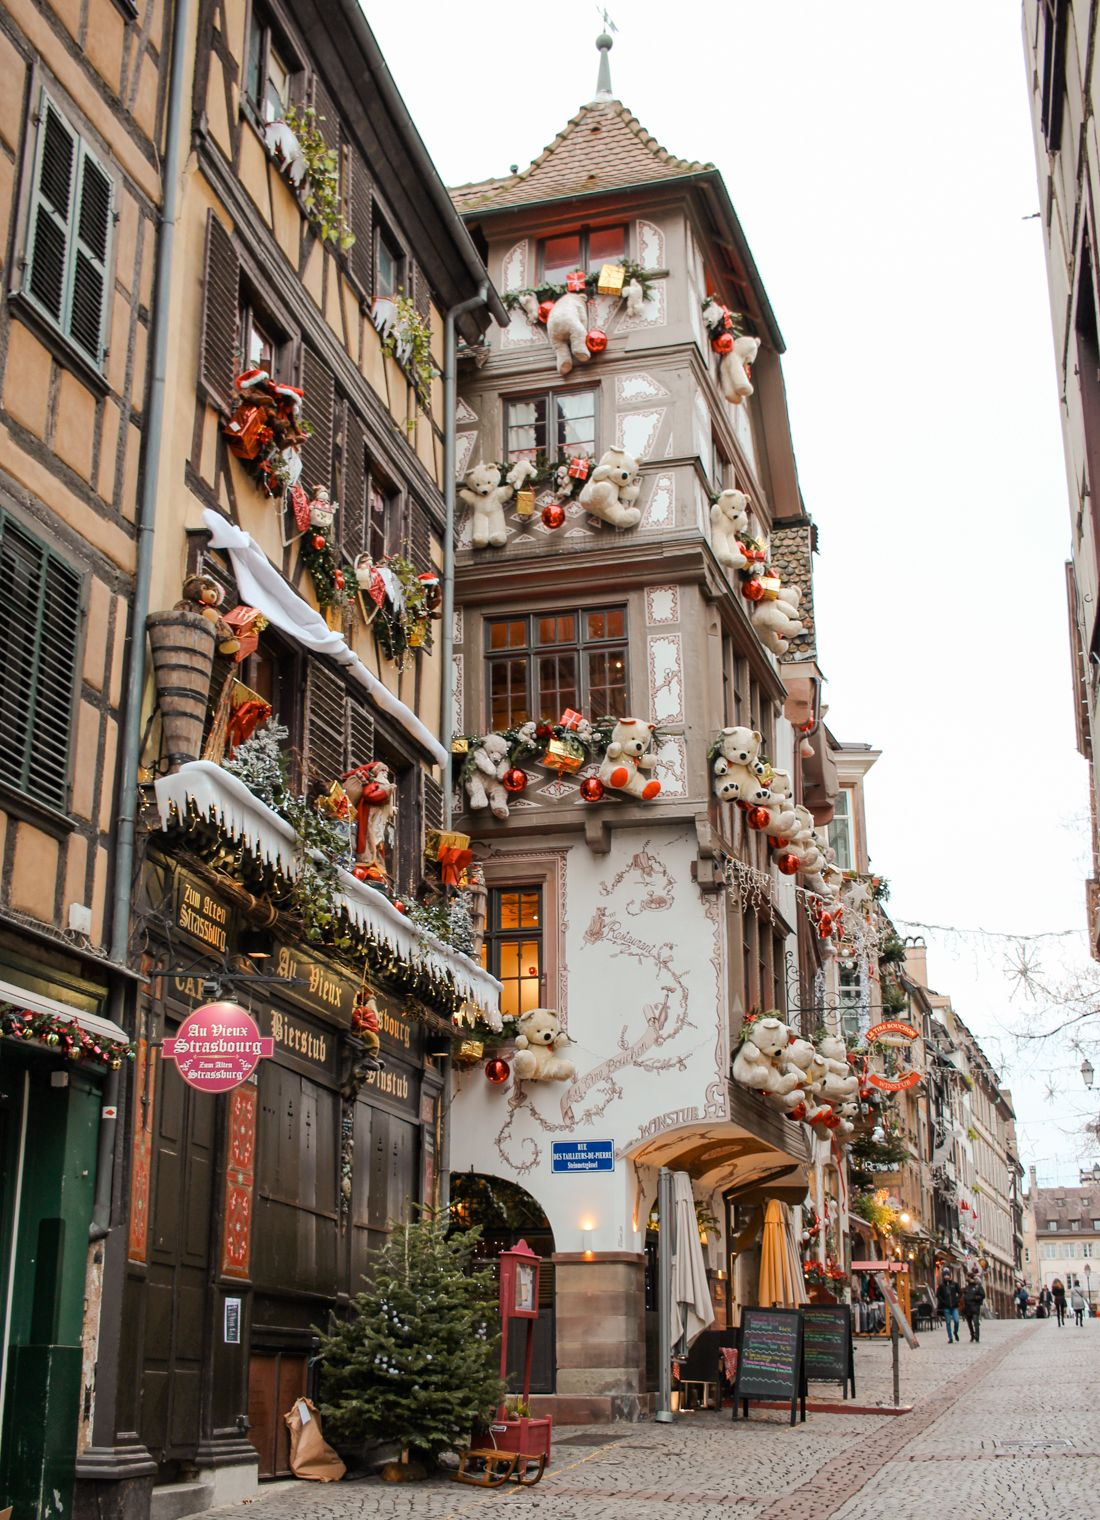 The Best Christmas Markets in Europe Viagens, Sonhos de